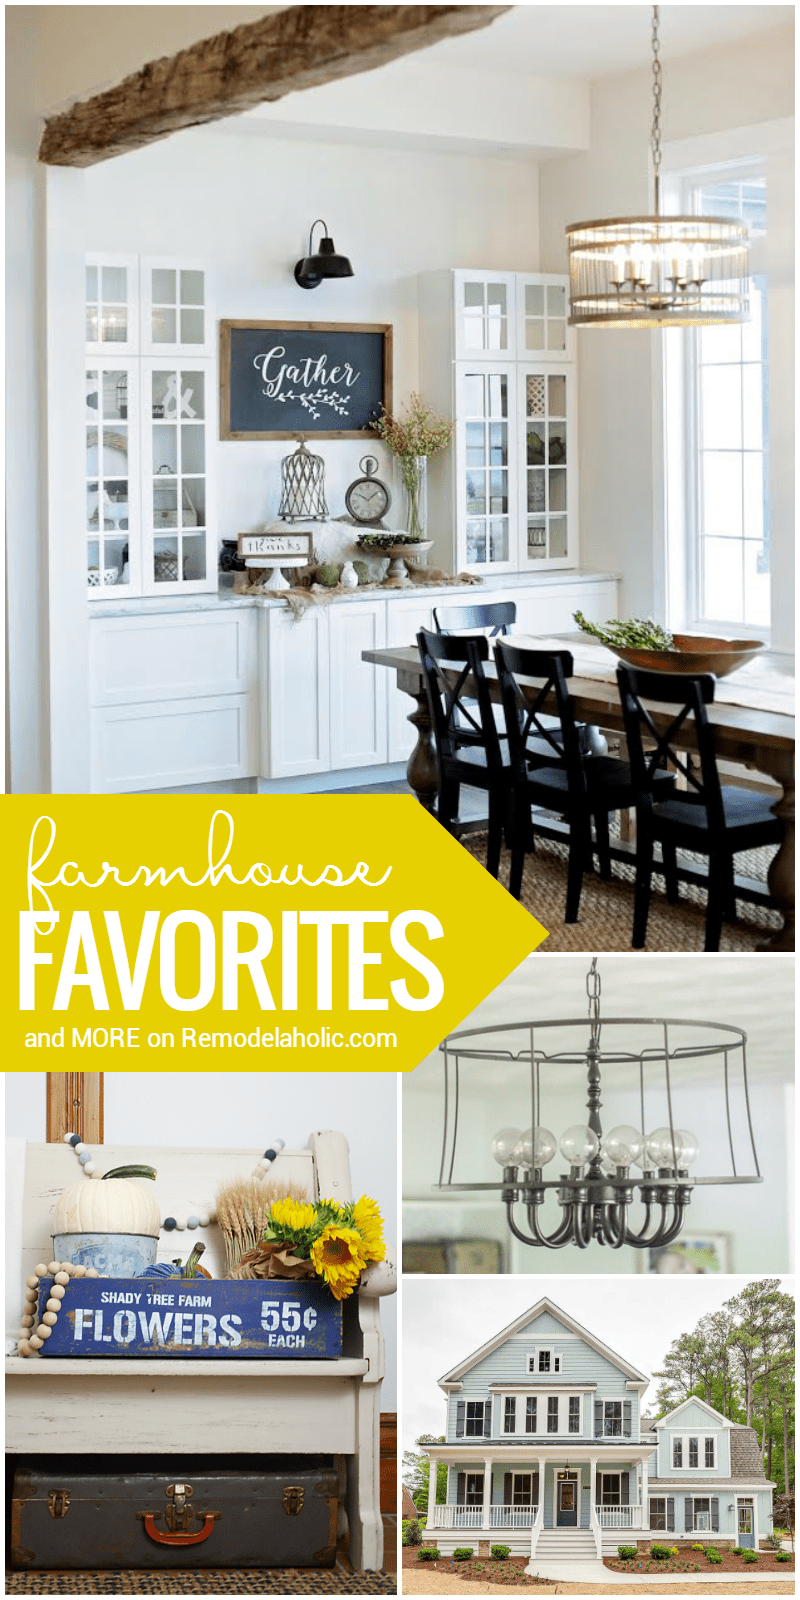 Remodelaholic | Friday Favorites: Fabulous Farmhouse Style and More